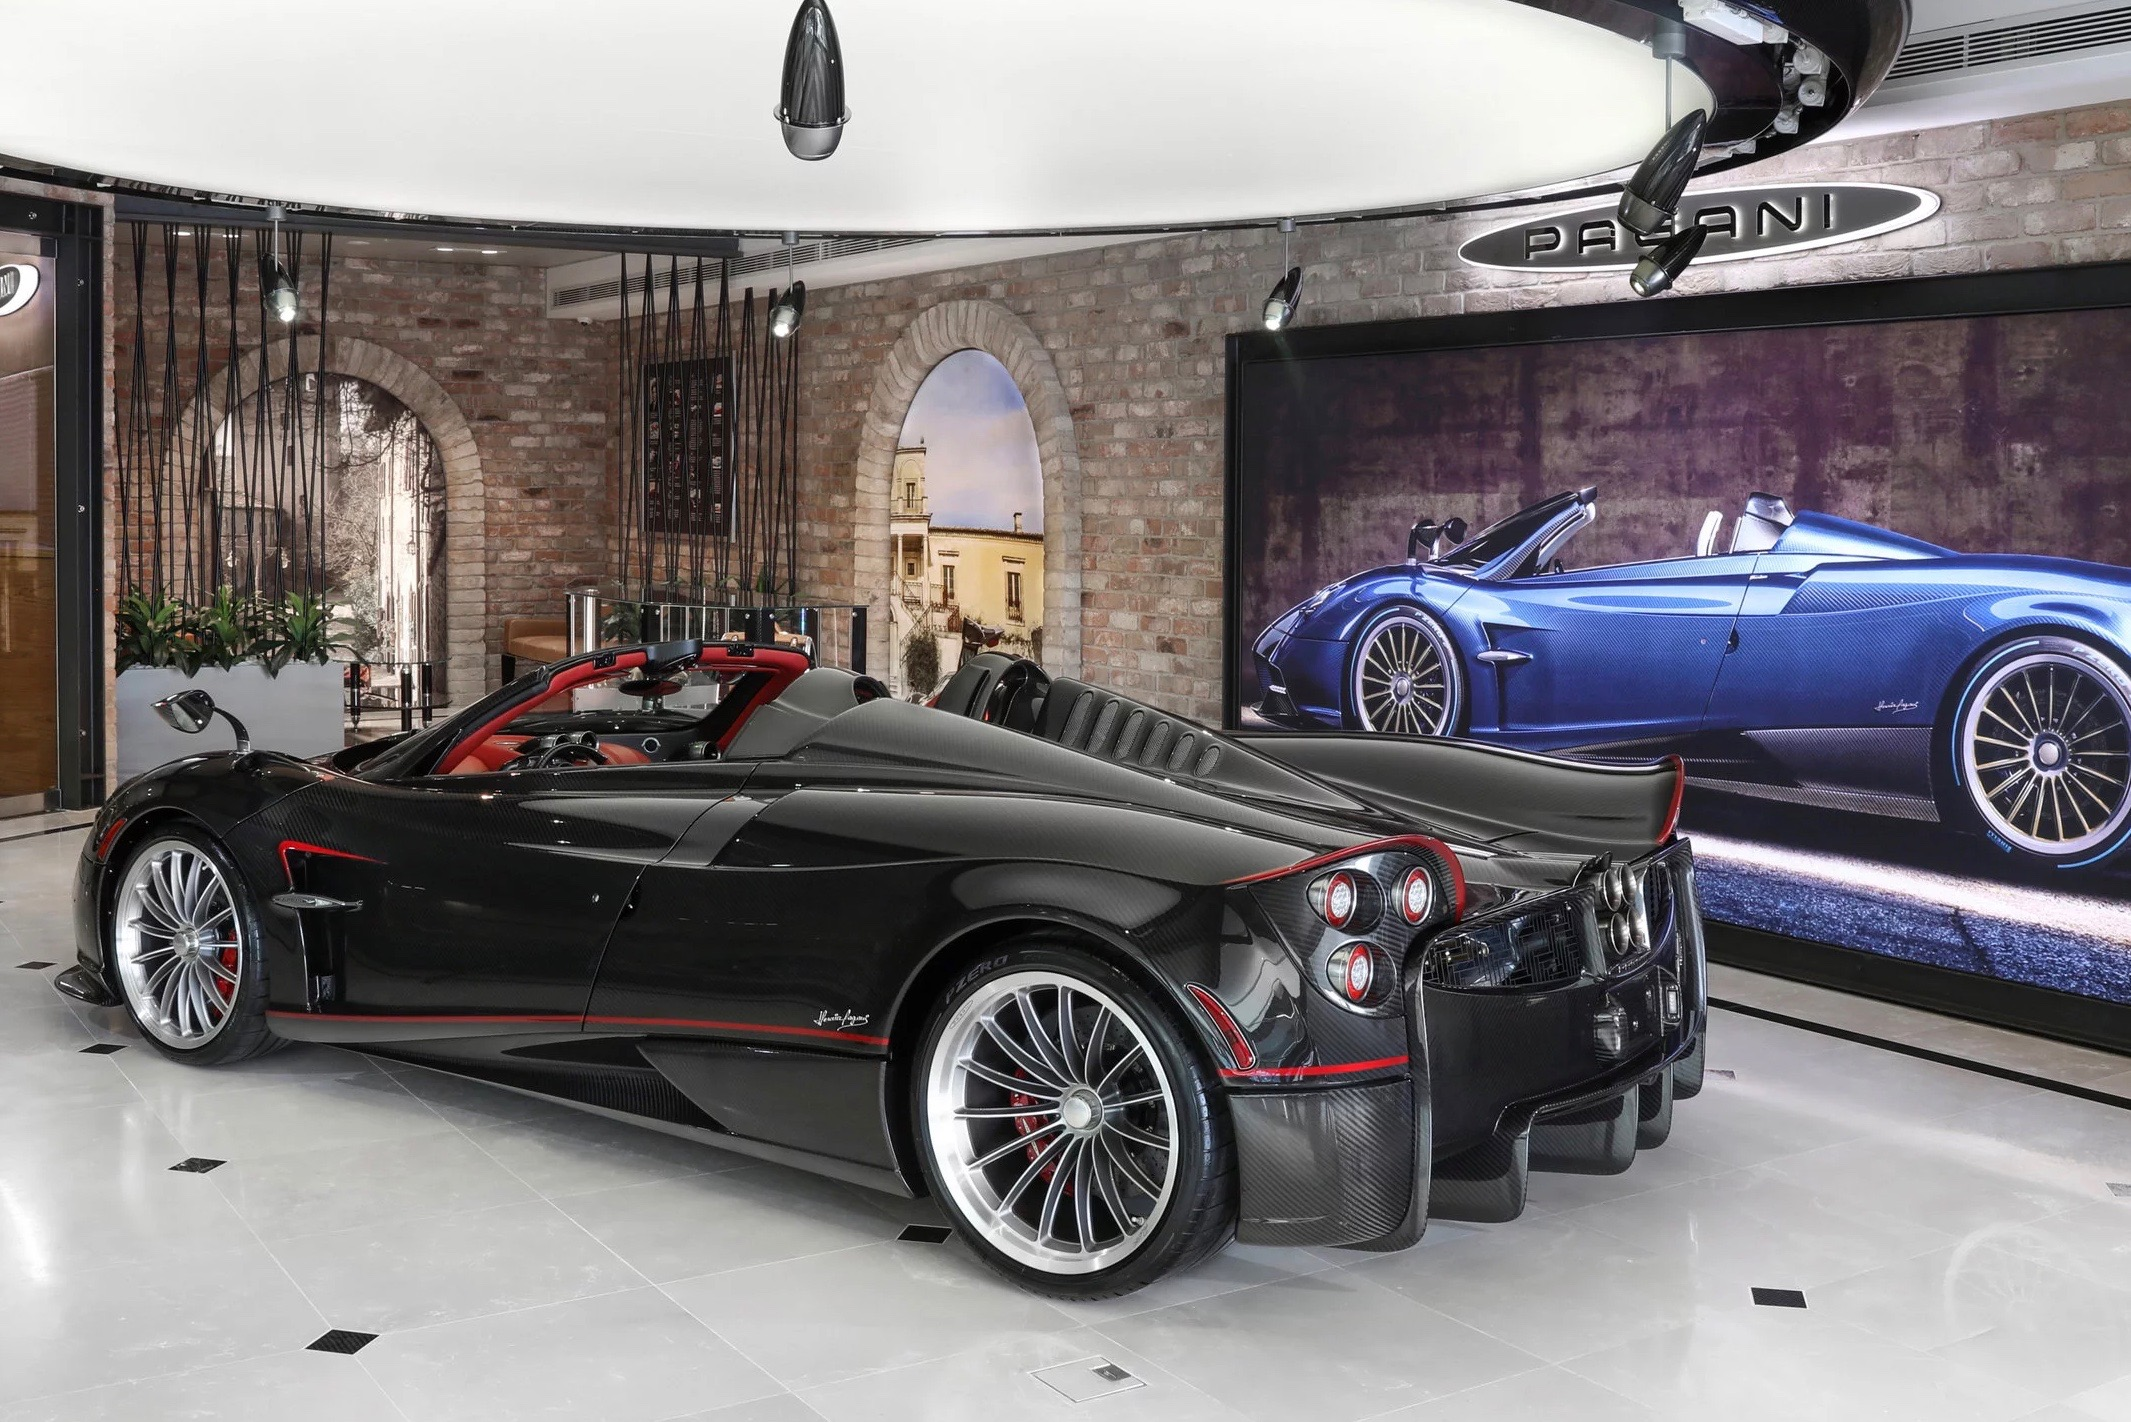 Lexus Of Melbourne >> Horacio Pagani helps open first Pagani dealership in Australia | PerformanceDrive